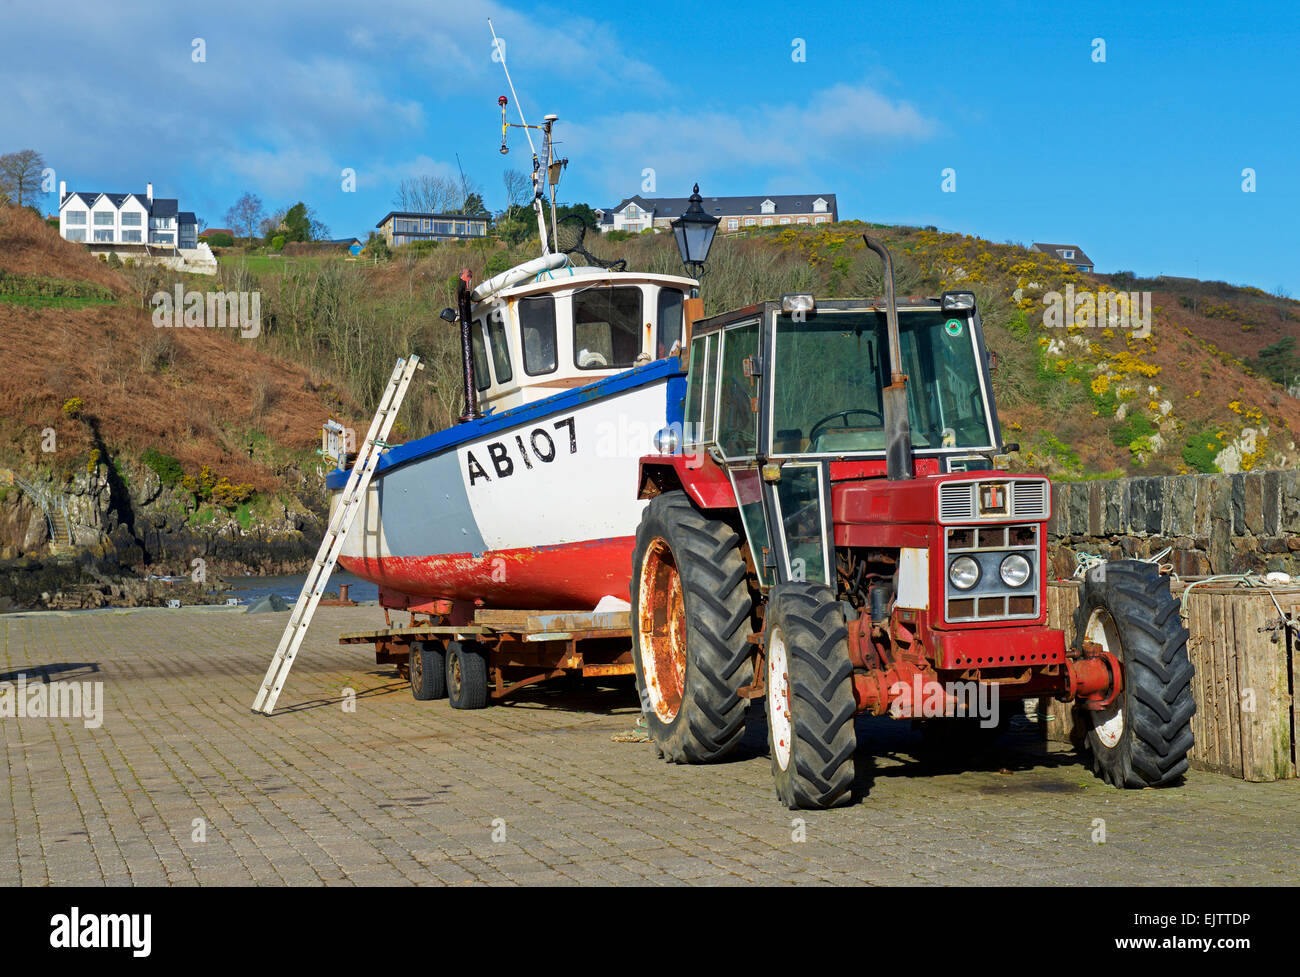 Fishing boat on trailer attached to tractor, the habour at Lower Fishguard, Pembrokeshiire, Wales UK - Stock Image